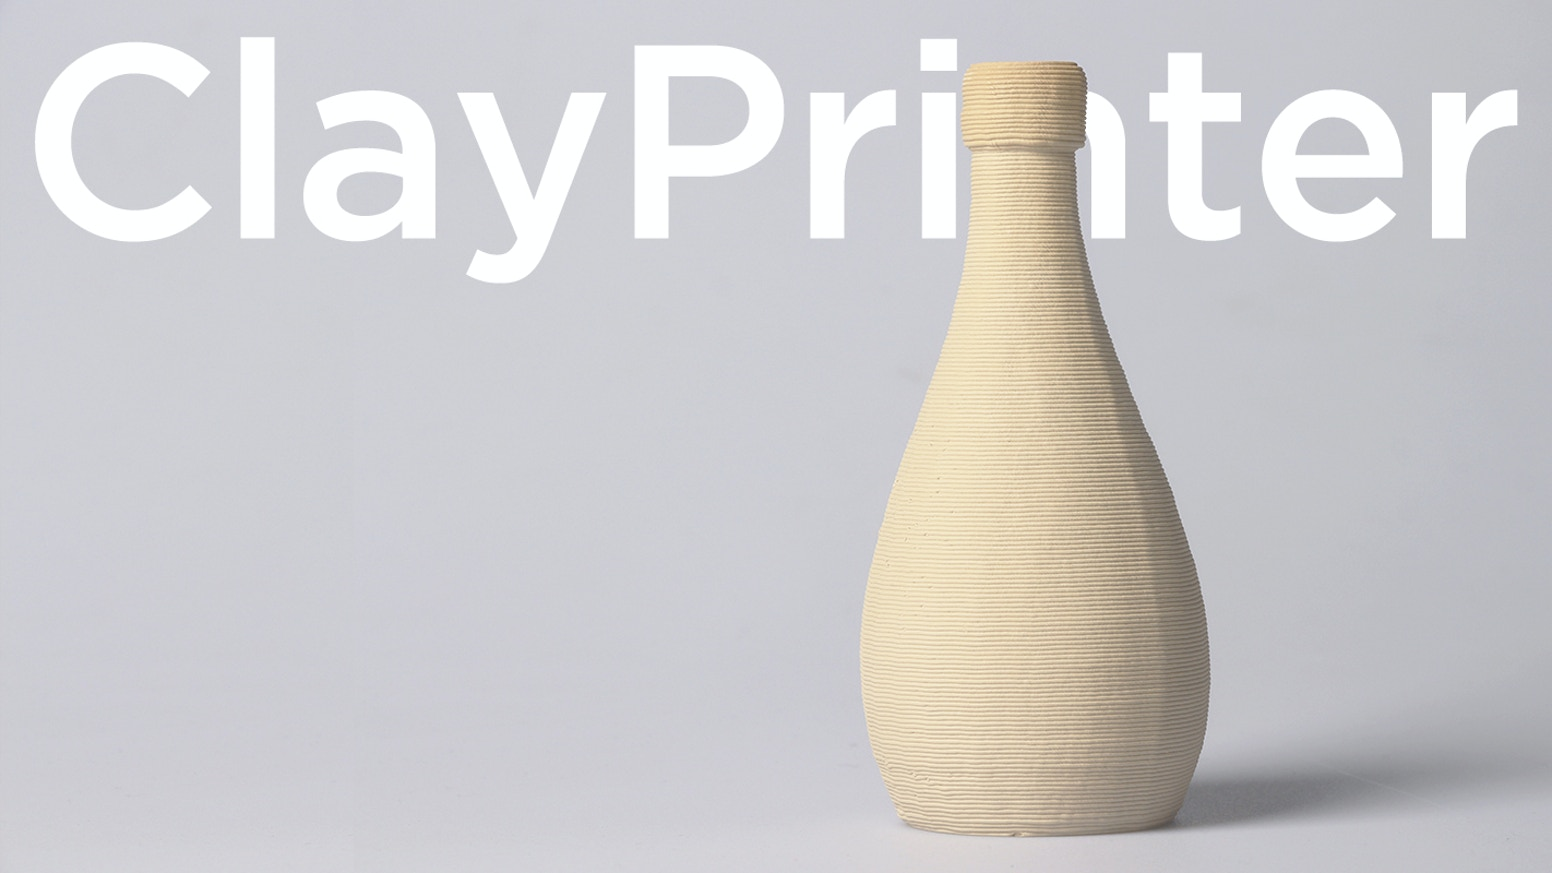 ClayXYZ: Desktop 3D Clay Printer, Create Your Own Artwork! by ... on coins for sale, jugs for sale, pedestals for sale, earrings for sale, home decor for sale, glass for sale, candlesticks for sale, storage for sale, decorative teapots for sale, tiles for sale, glass vase sale, stationery for sale, spoons for sale, vintage bowls for sale, plants for sale, pewter dragons for sale, silver for sale, figurines for sale, statuary for sale, stencils for sale,